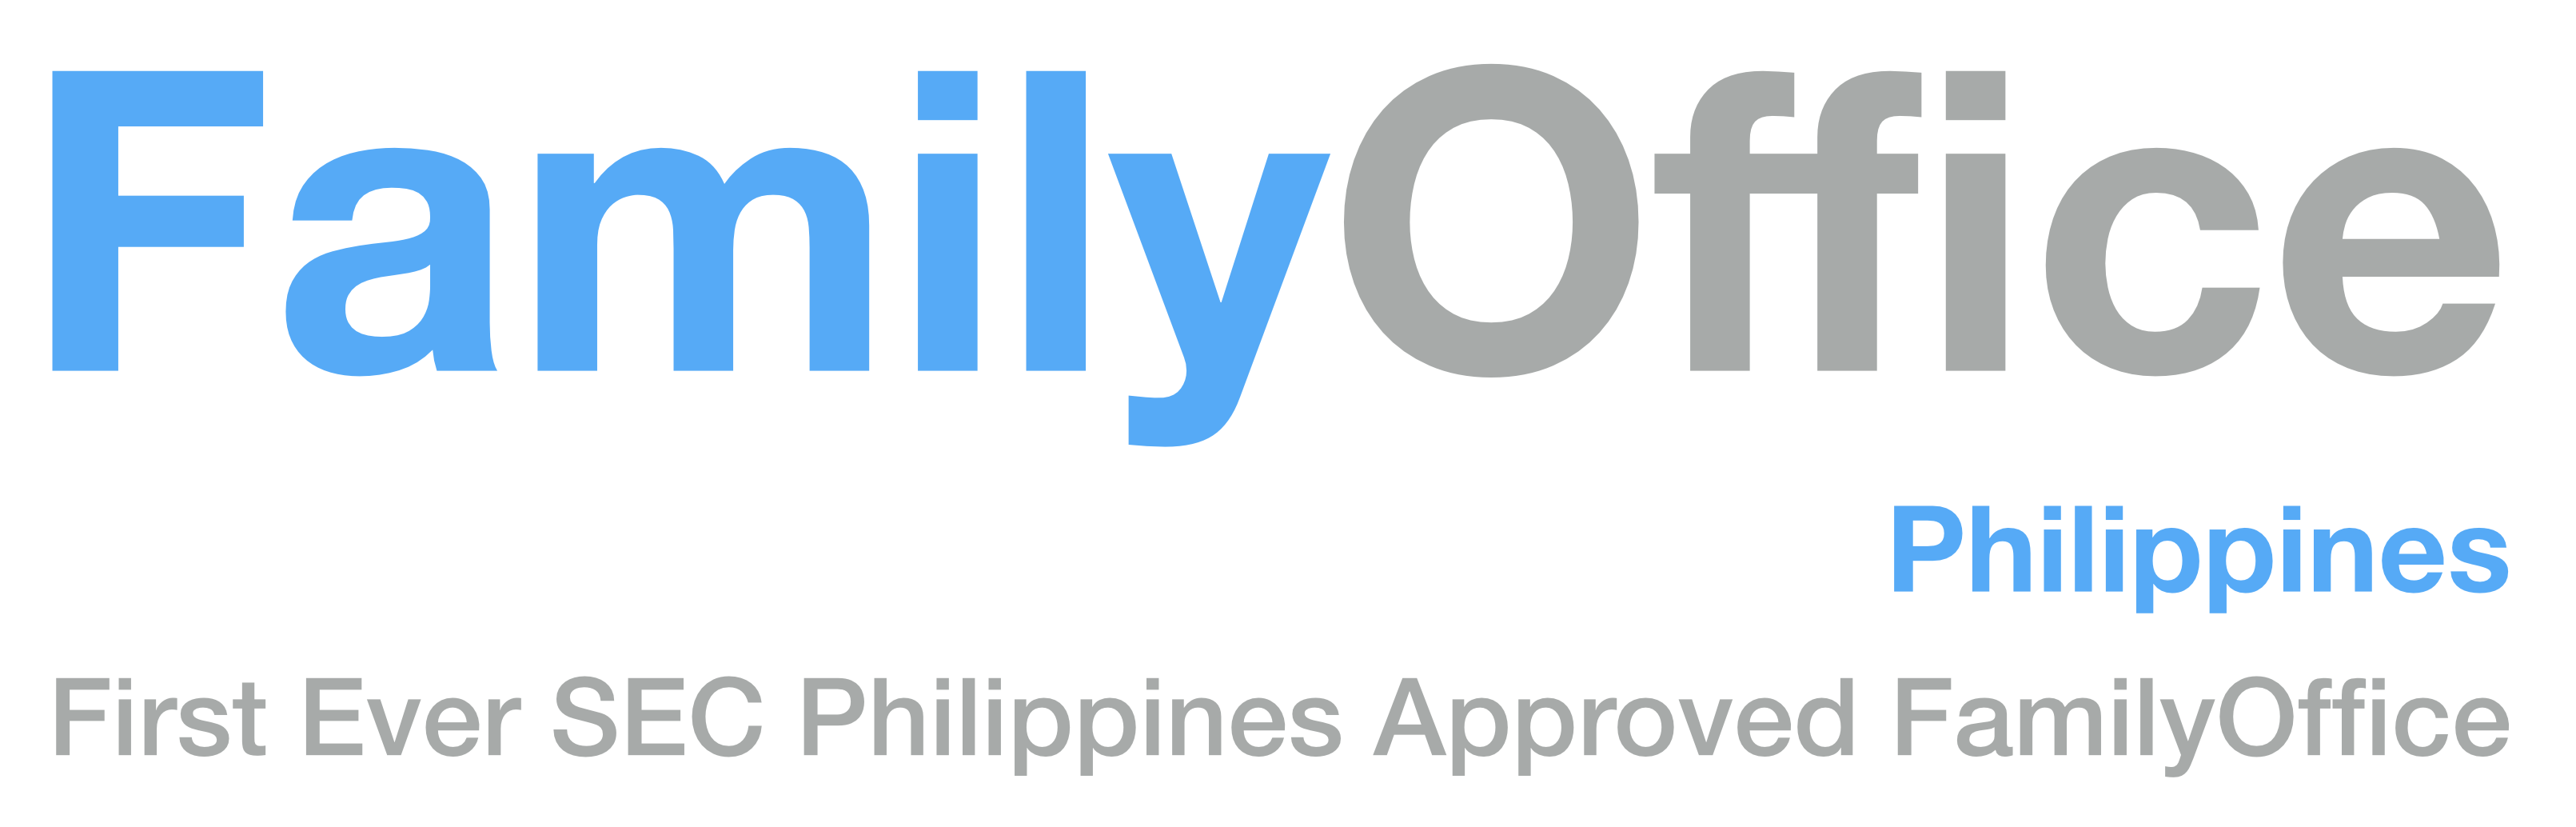 FamilyOffice Inc. Philippines - 1st ever official established and SEC registered and approved Familyoffice in the Philippines